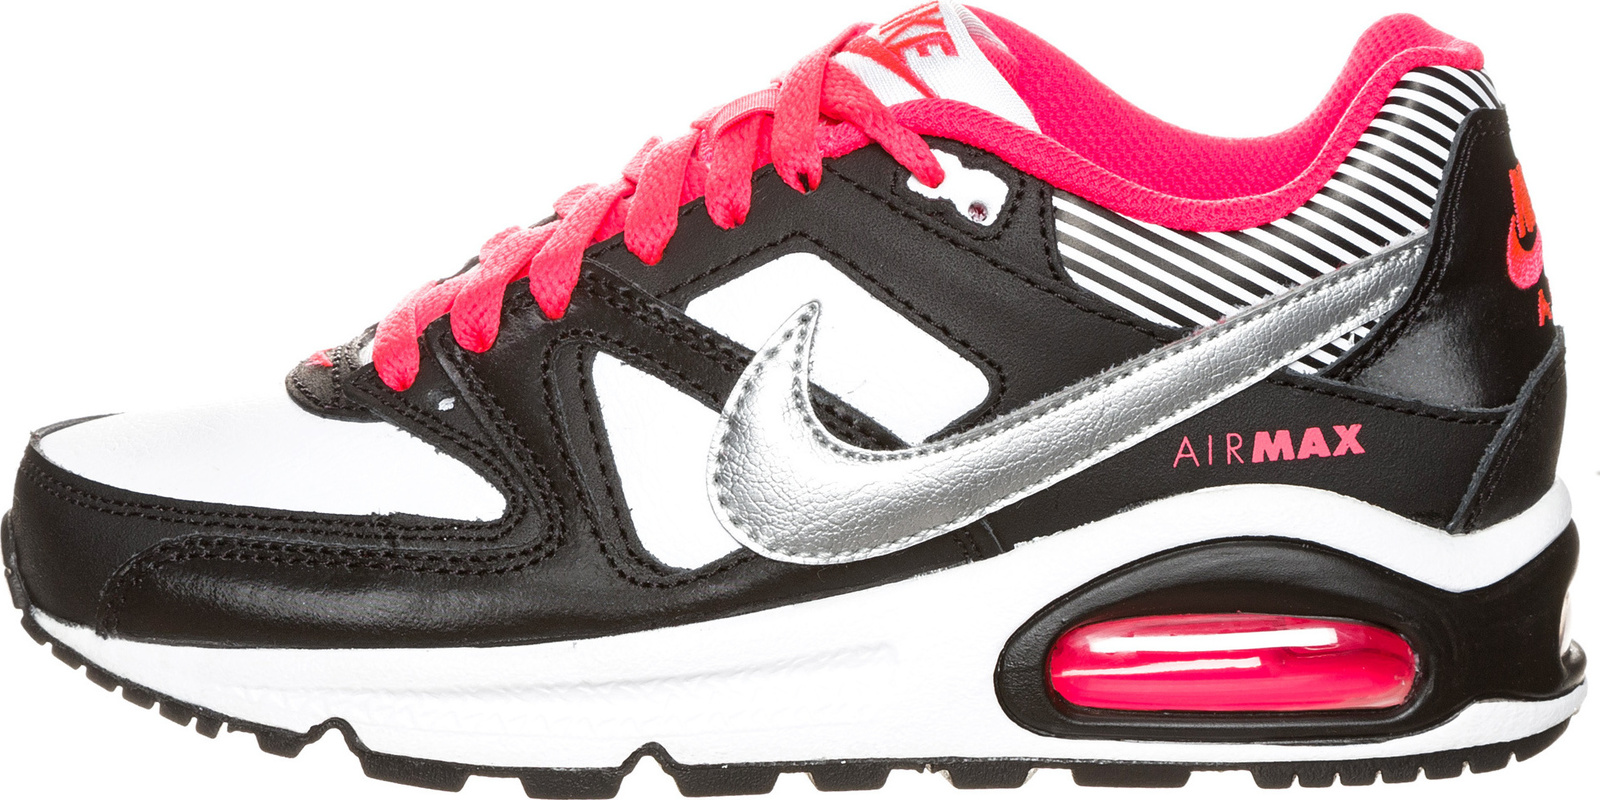 uk availability cfc36 22ecf norway nike air max command skroutz opinie c77cd 0fd5b